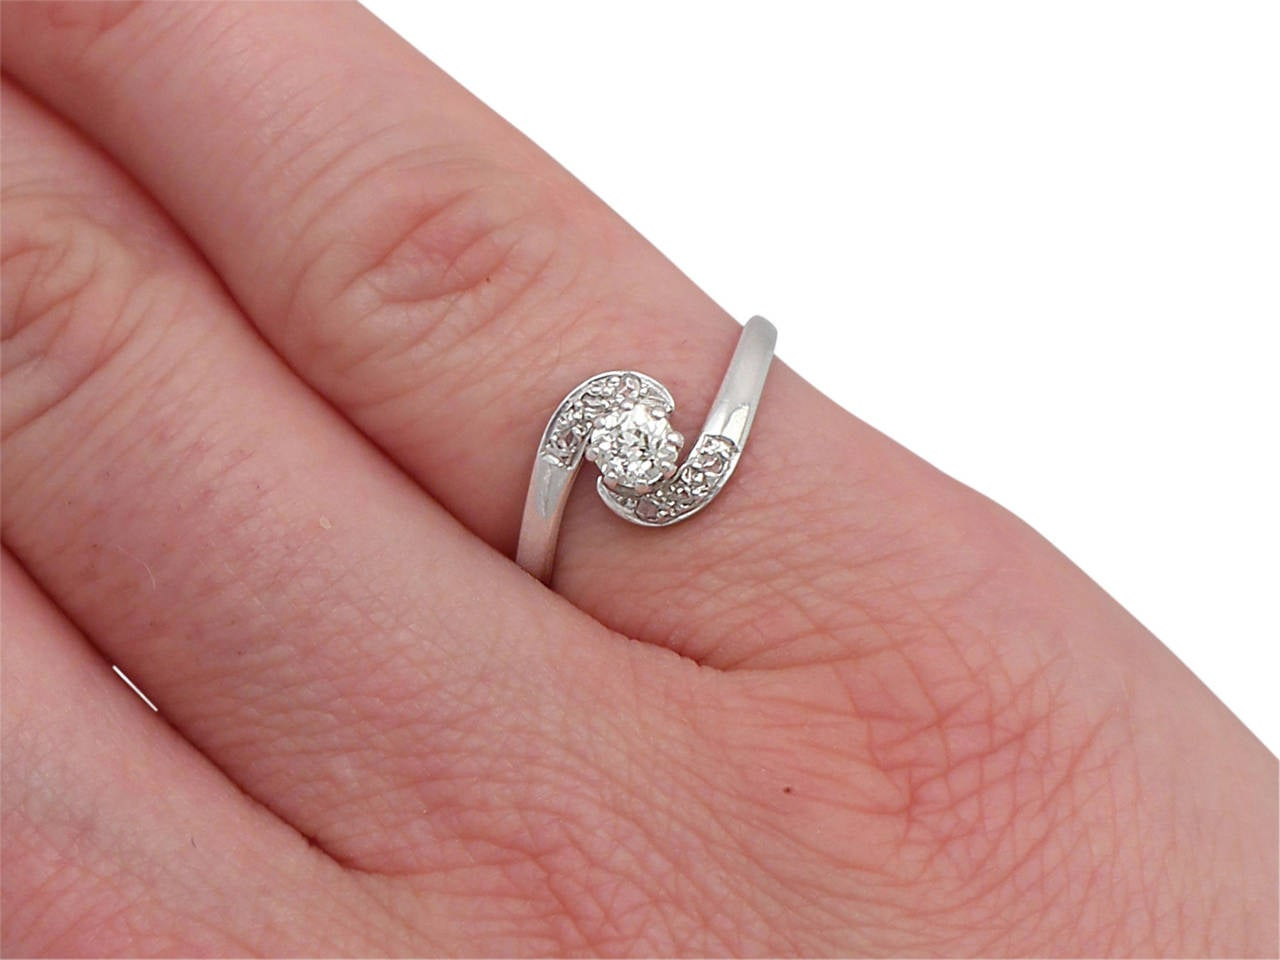 1985 Diamond and Platinum Twist Ring For Sale at 1stdibs